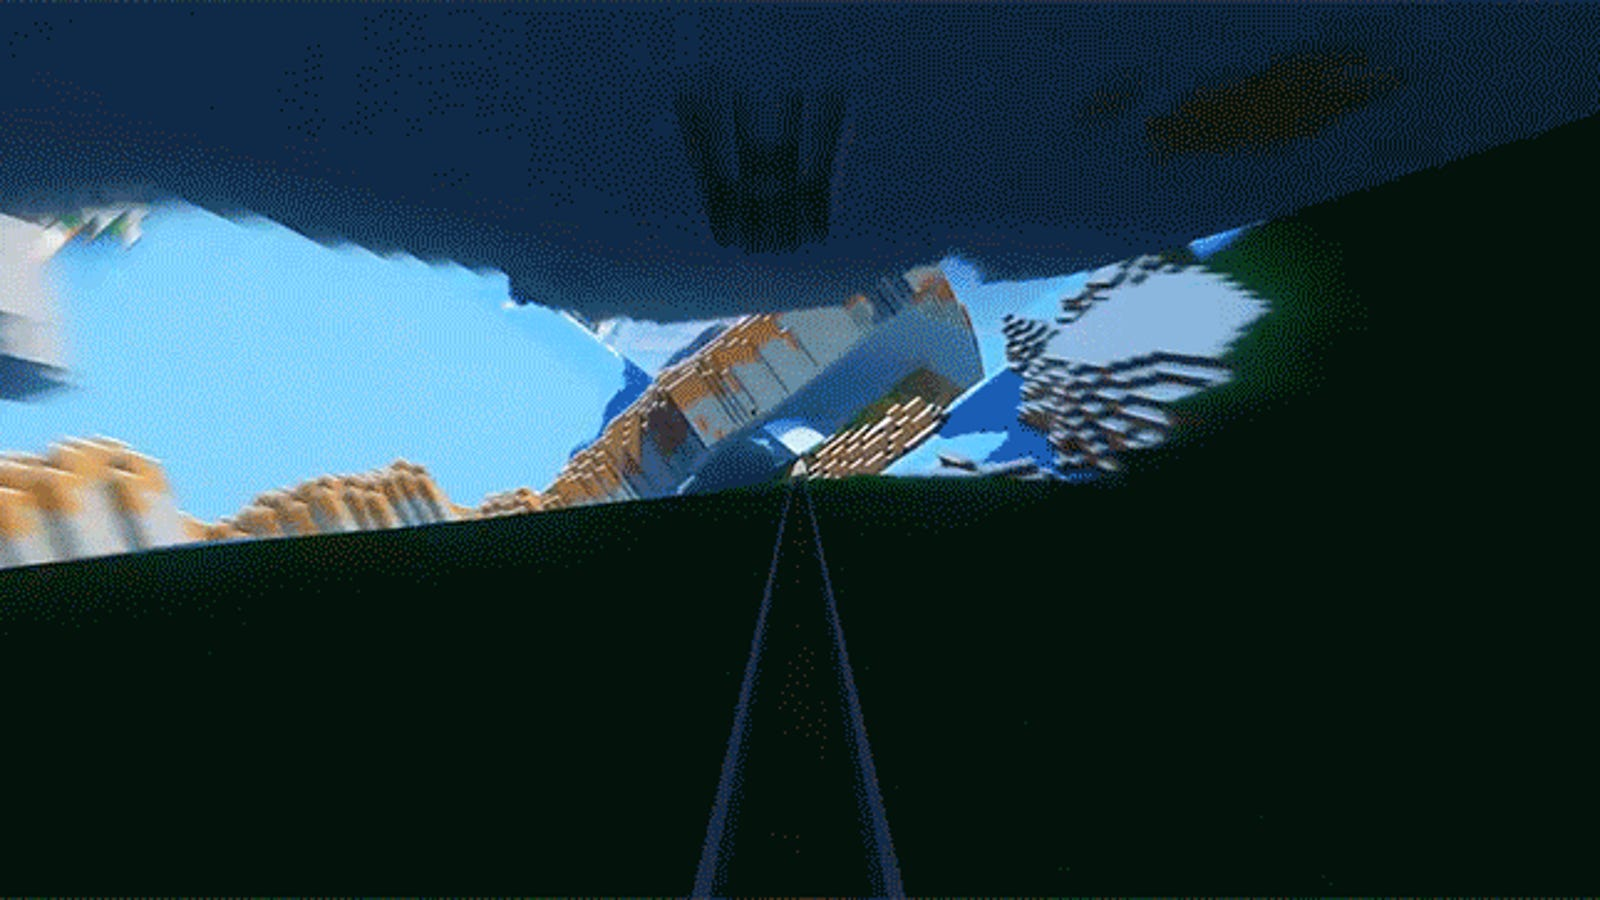 Take a Trippy Ride Down Minecraft's Acid Interstate